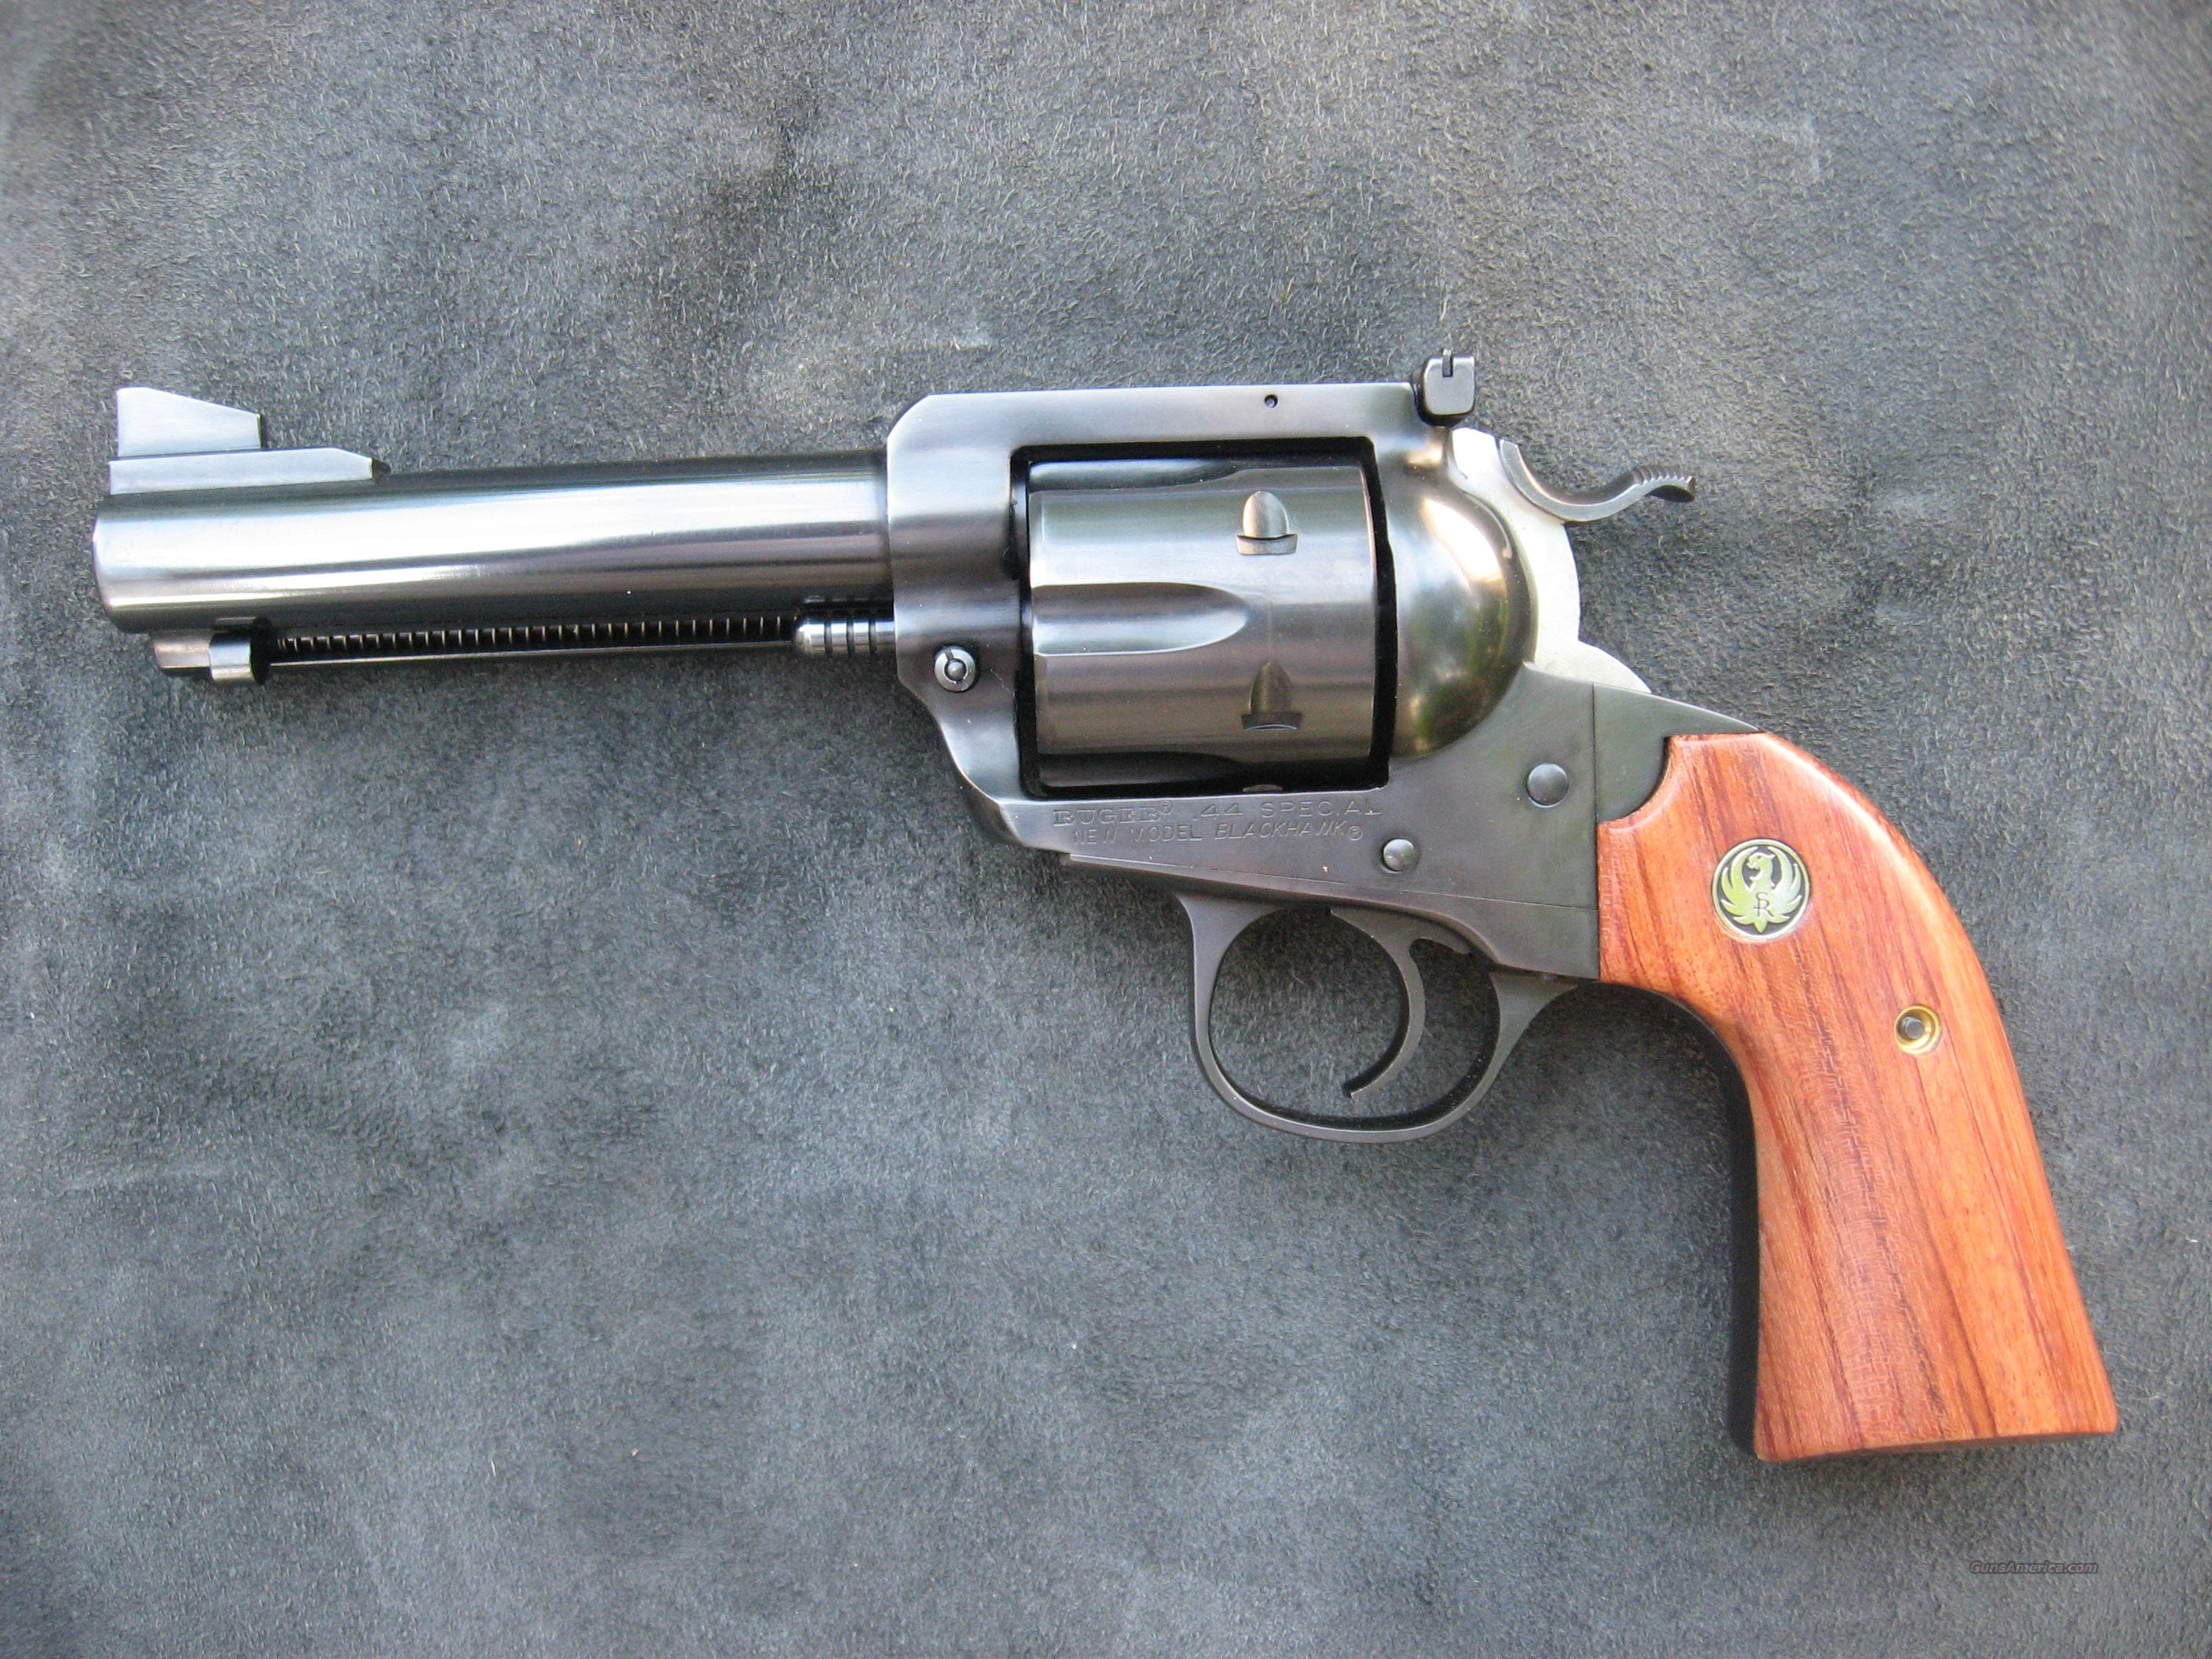 Custom Ruger Flat Top Blackhawk  Guns > Pistols > Ruger Single Action Revolvers > Blackhawk Type